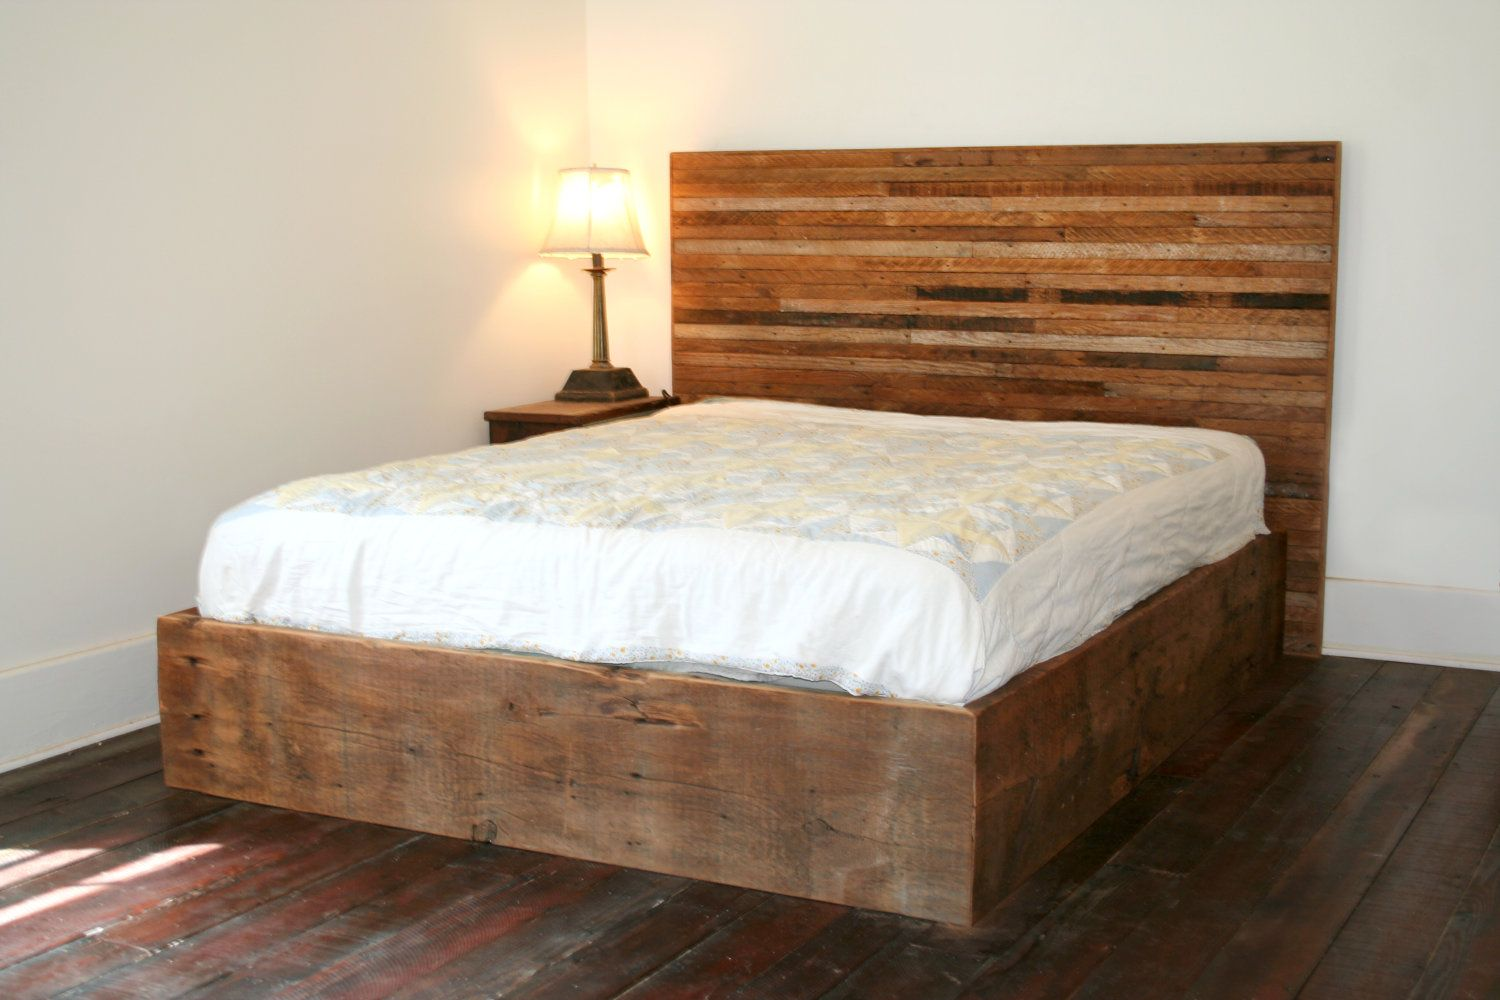 Popular Items For Reclaimed Wood Bed On Etsy